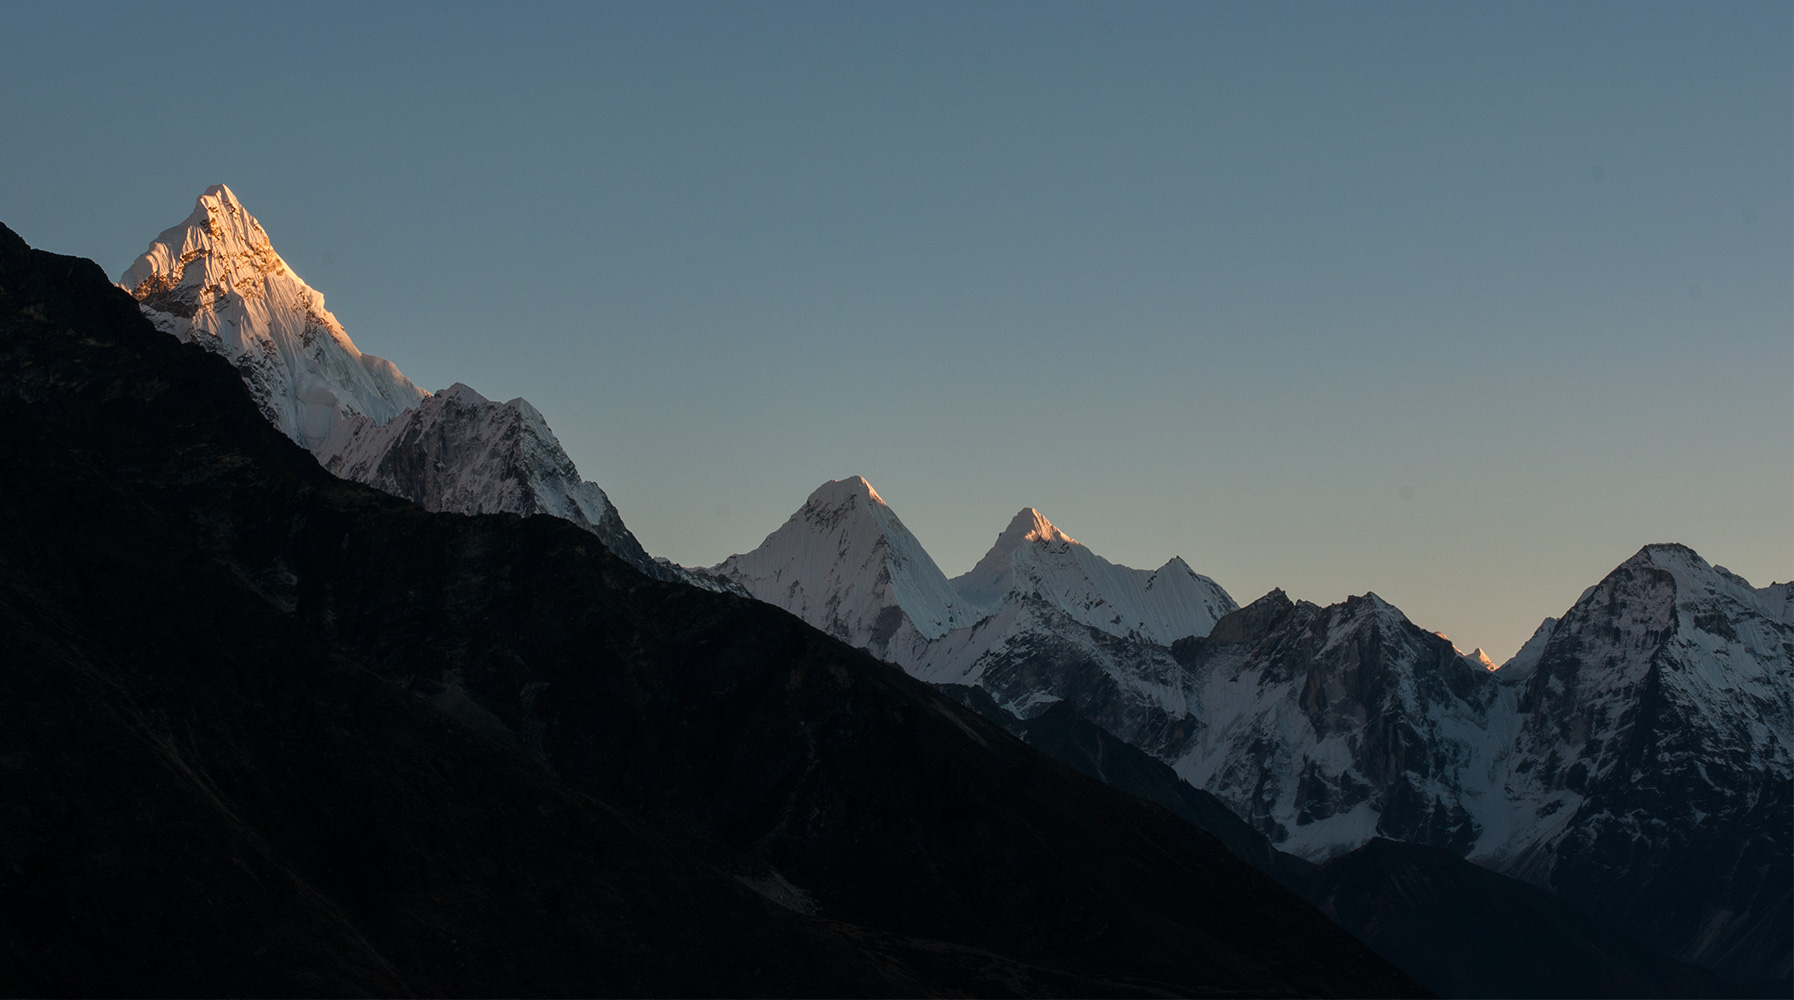 A view south from about halfway up Kala Pattar. On the left is Ama Dablam, with Kantega and Thamserku beyond.Nikon D300, 17-35mm